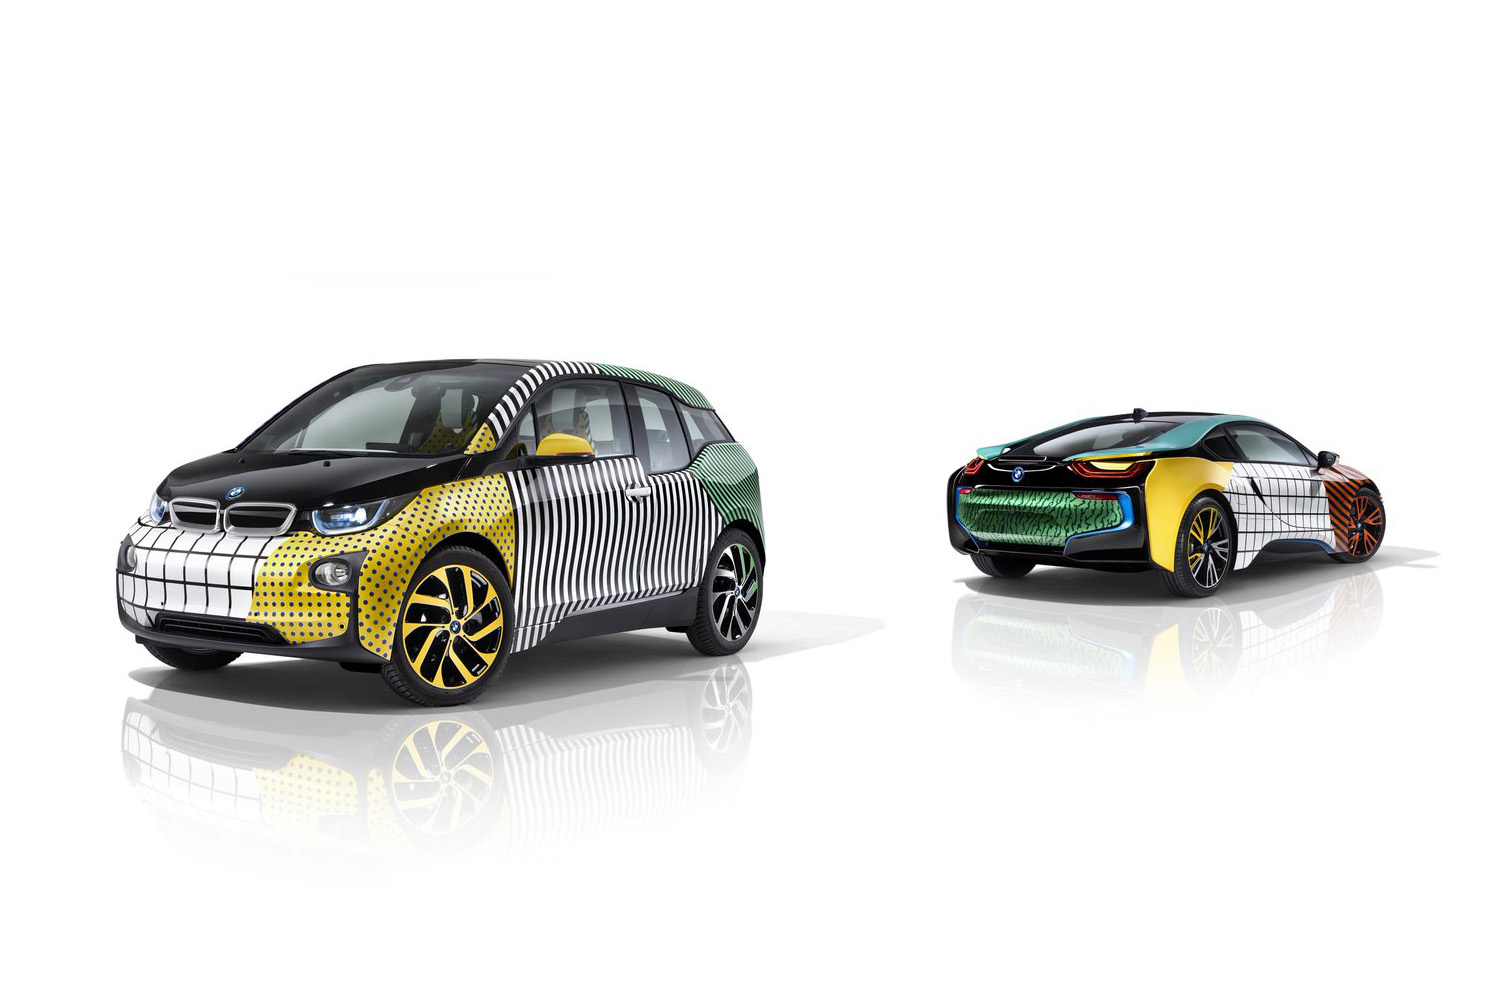 Garage Italia Customs + Memphis Design + BMW i3 + BMW i8 = Art Car